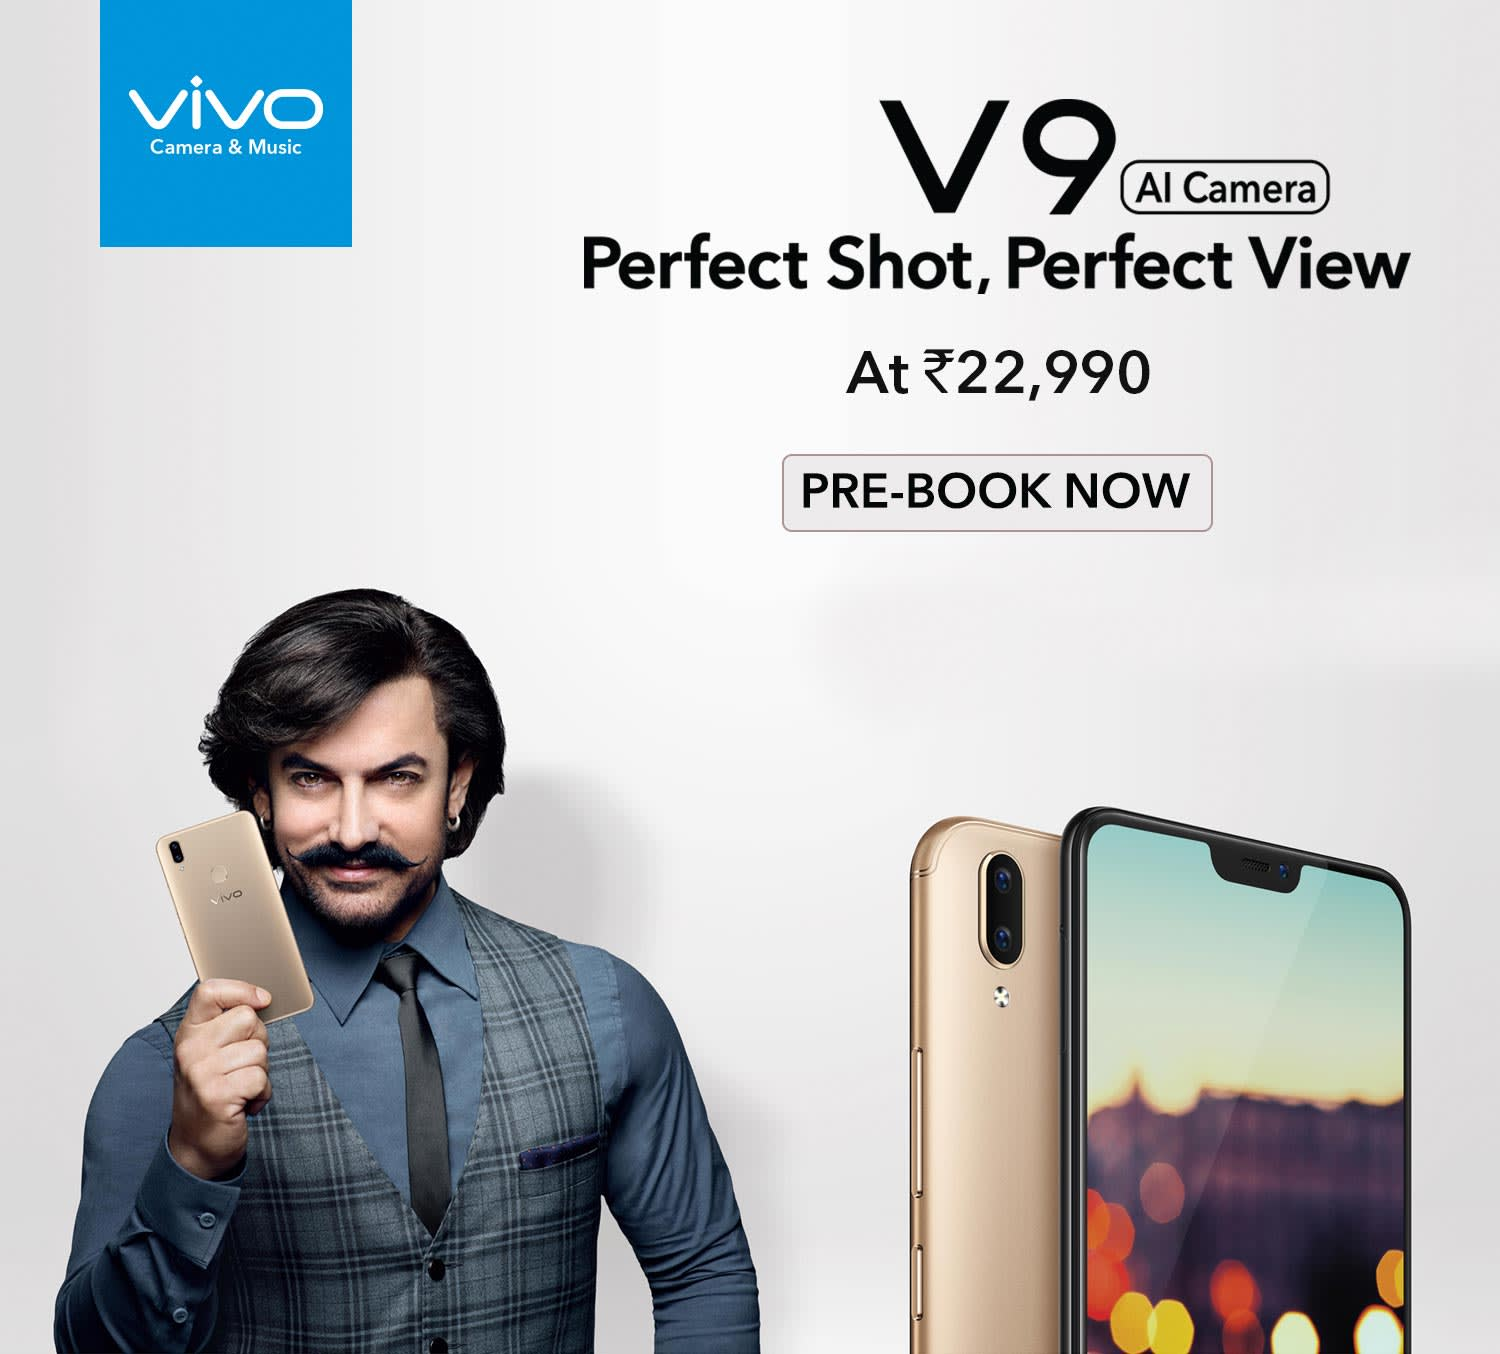 Prebook-Vivo V9 (19:9 FullView Display, Pearl Black) with Offers